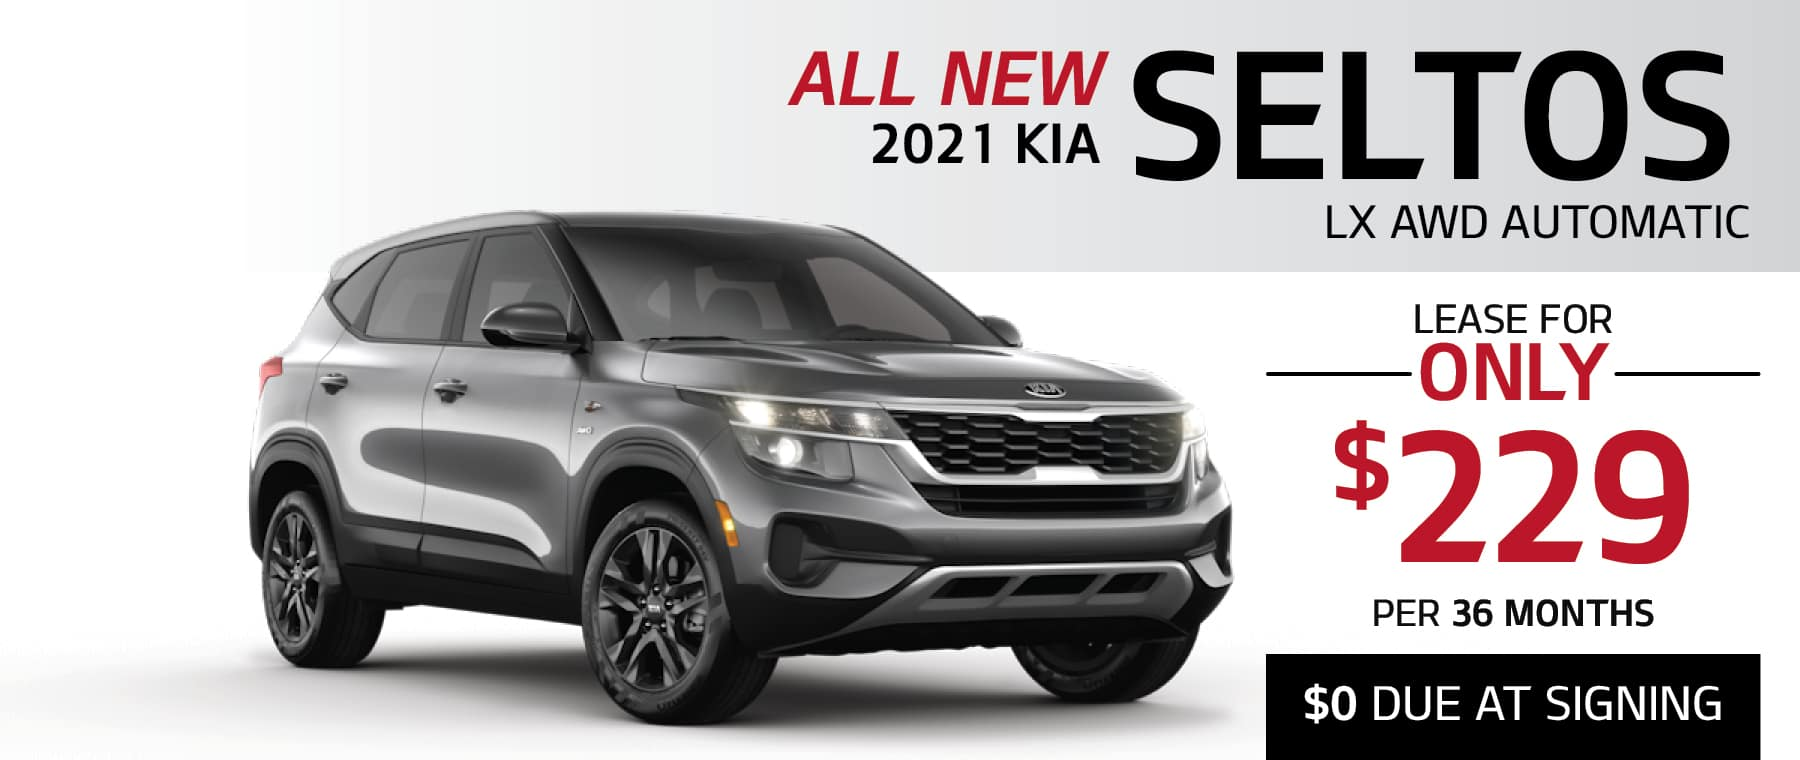 2021 Kia Seltos LX lease offer with $0 due at signing